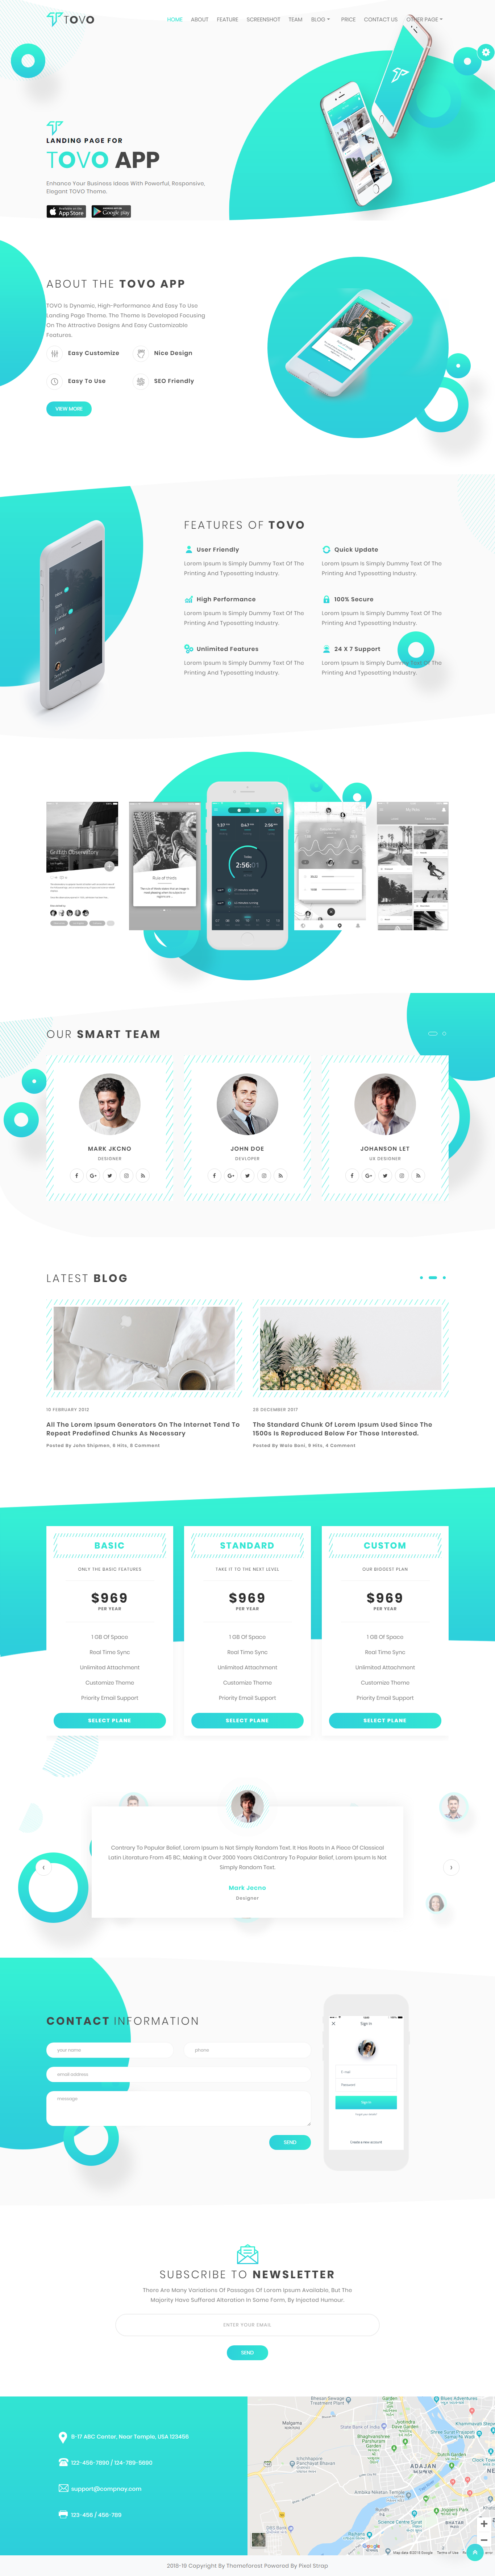 Bootstrap Landing Page | Mobile App Bootstrap Landing Page | App